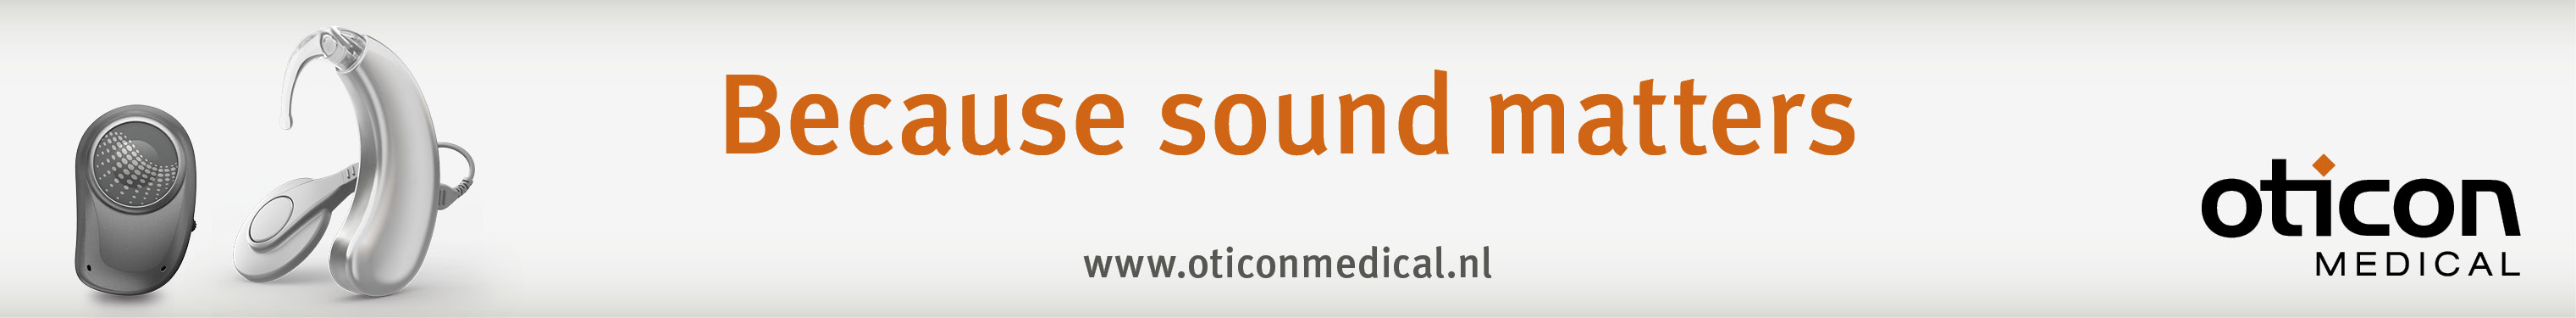 Banner Oticon Medical Ponto